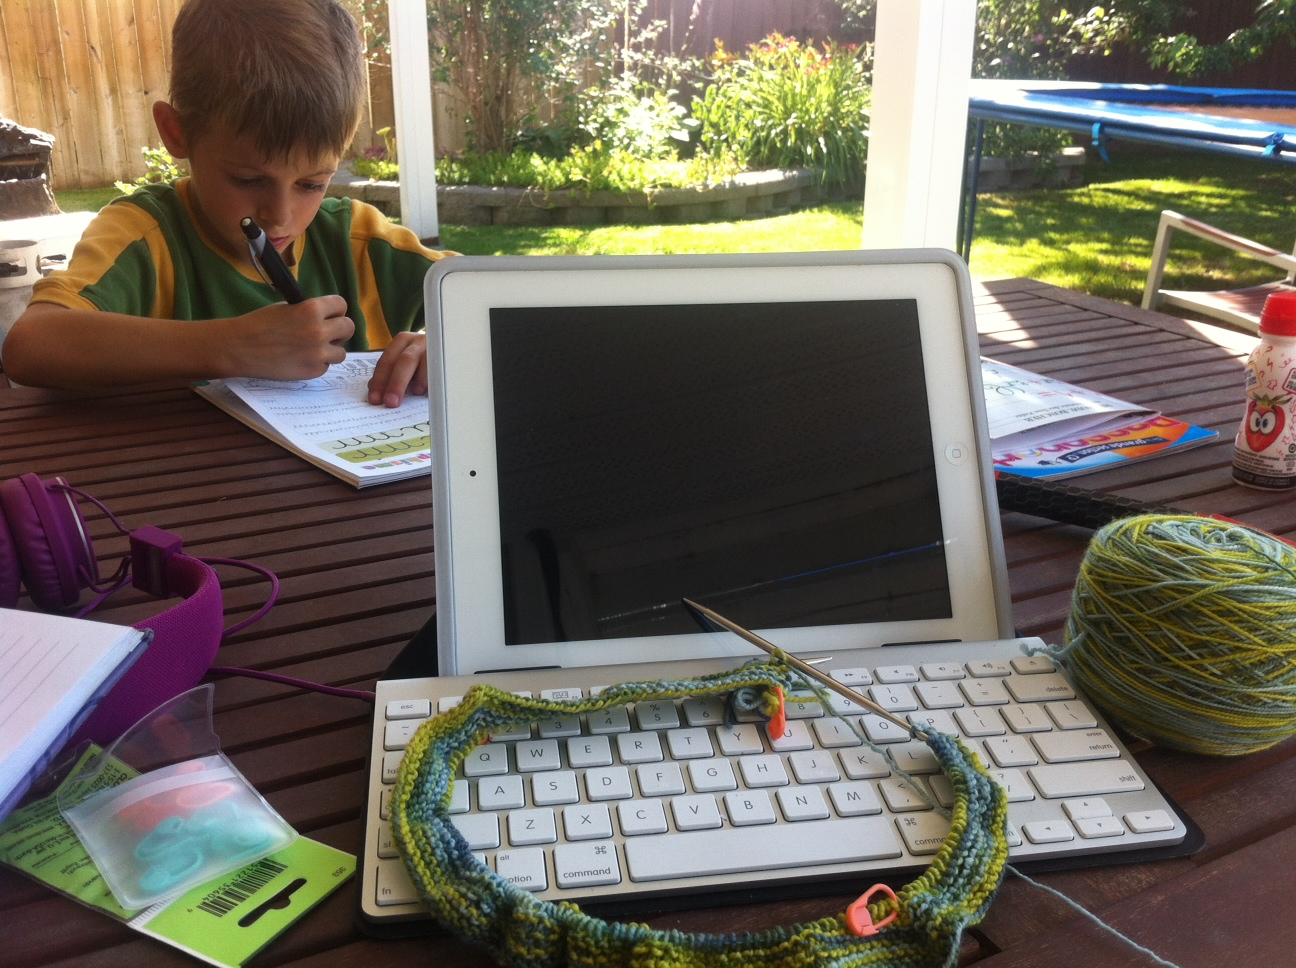 Harrison diligently doing his graphisme while mummy knits, er, looks on.